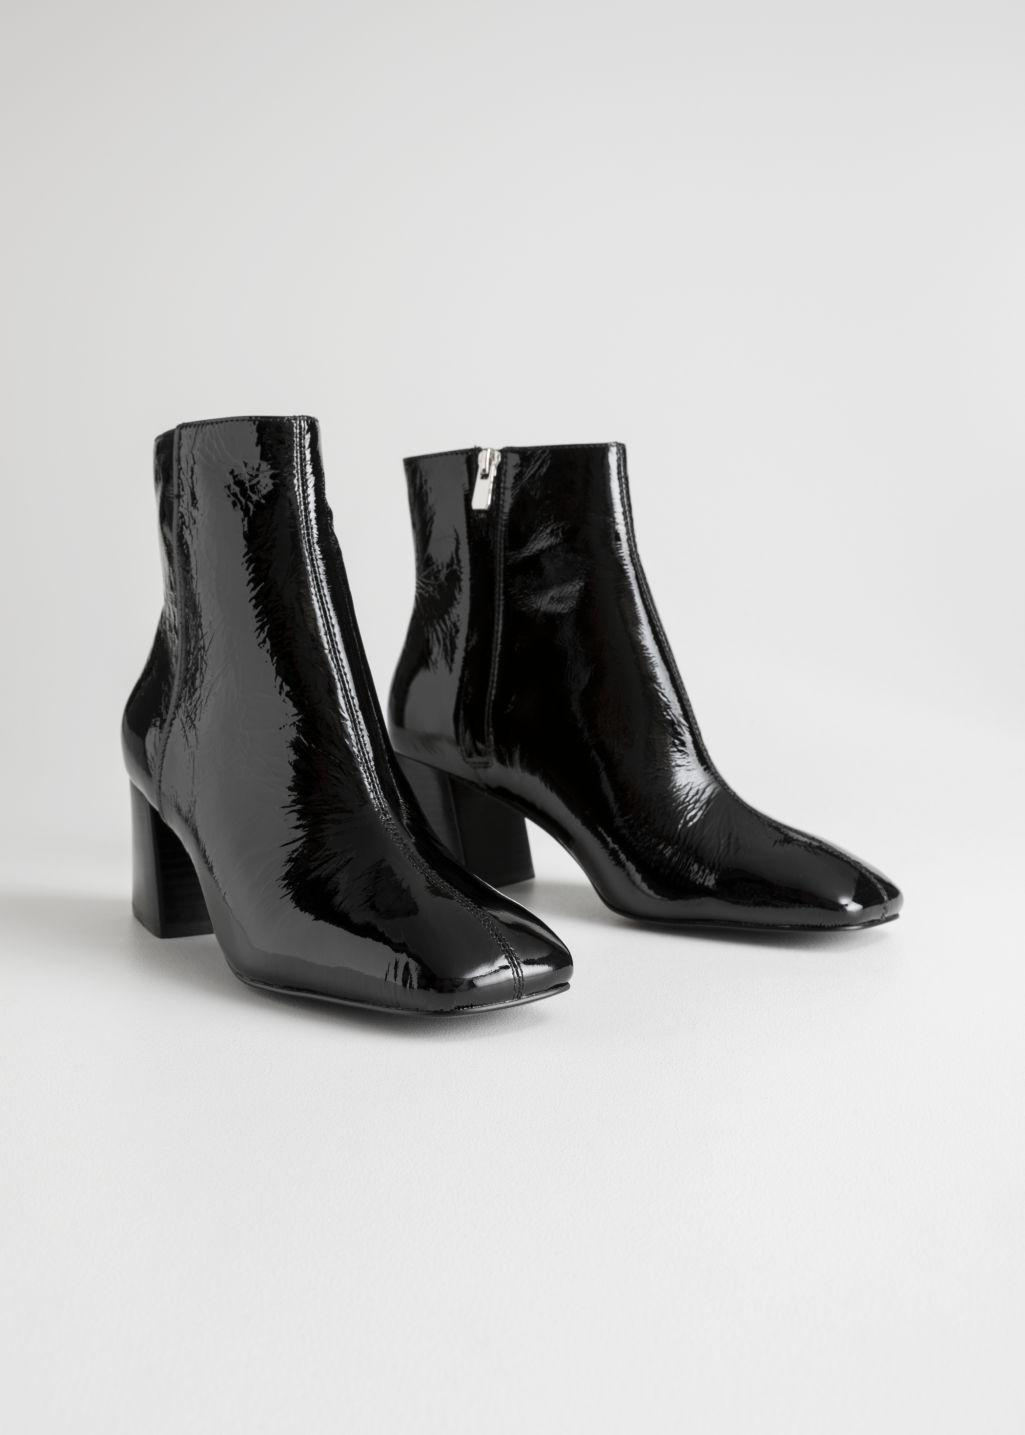 Other Stories Leather Patent Square Toe Ankle Boots In Black Lyst